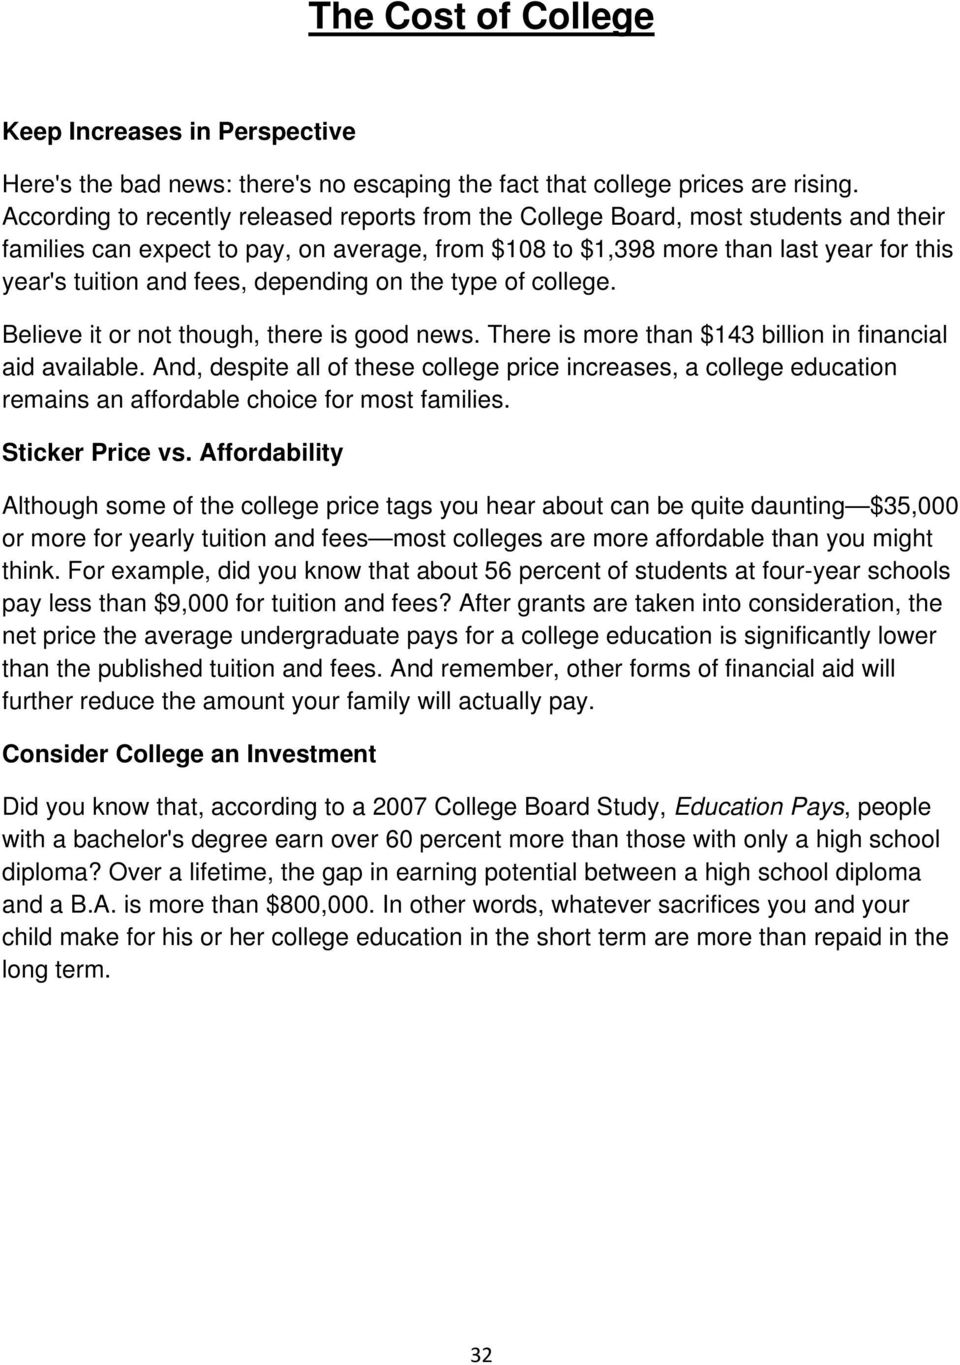 fees, depending on the type of college. Believe it or not though, there is good news. There is more than $143 billion in financial aid available.